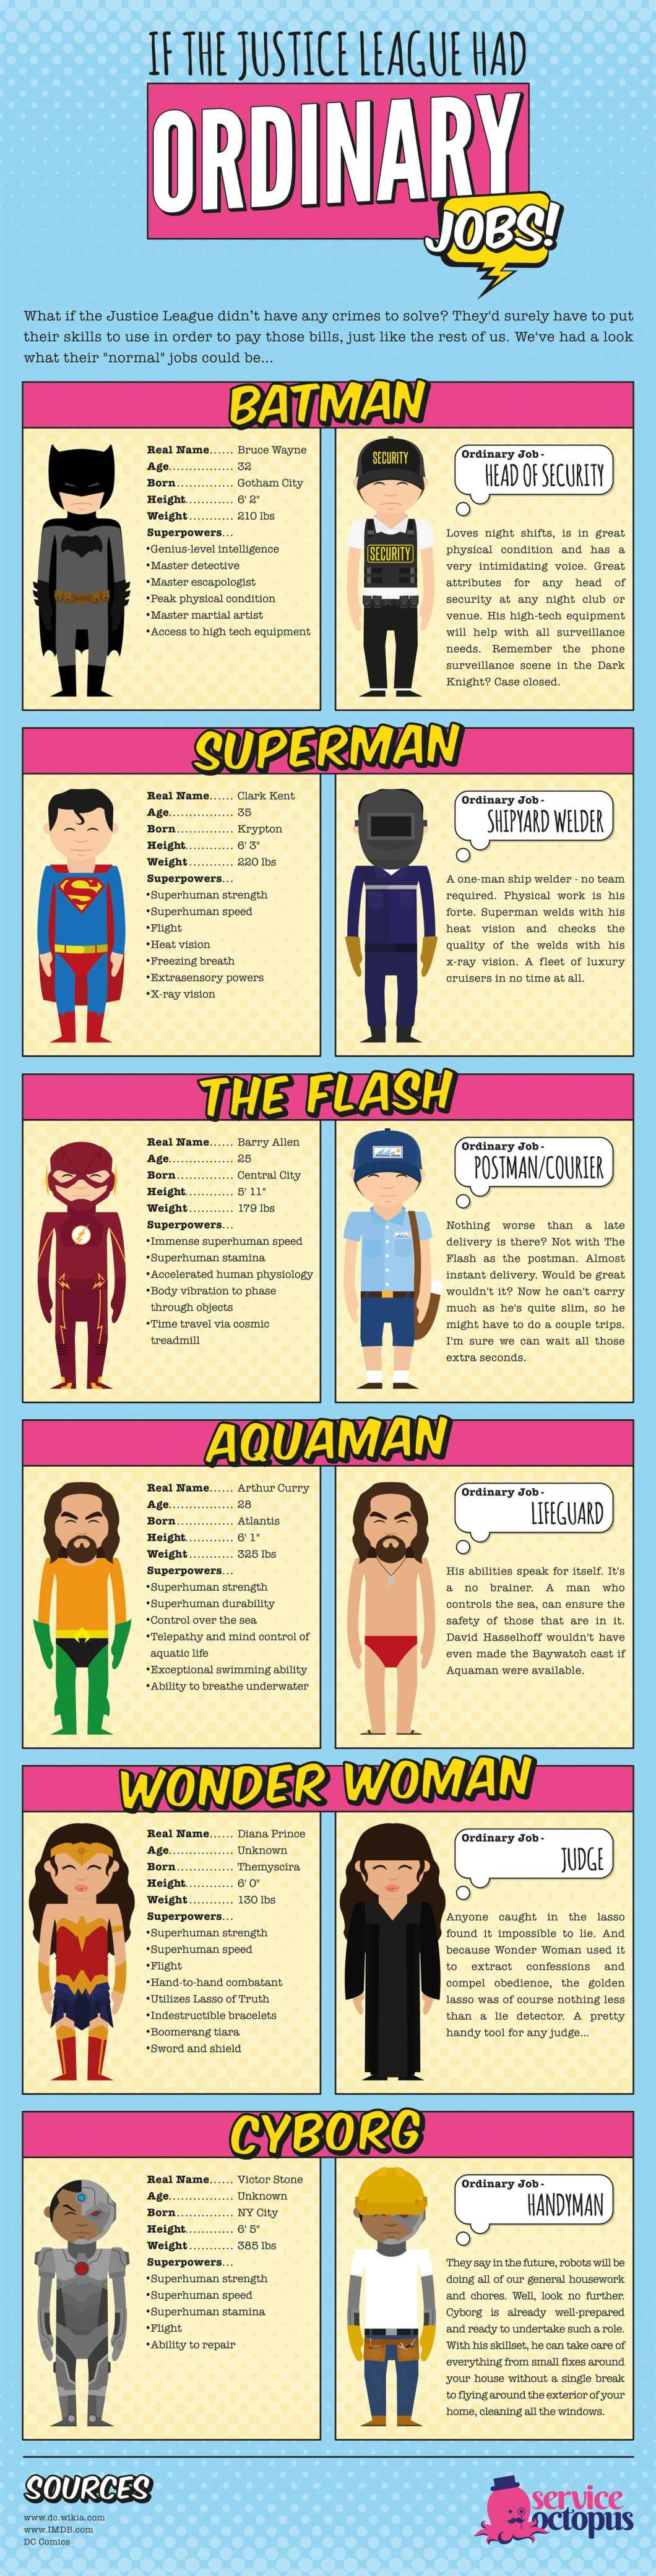 Normal Jobs the Justice League Would Love! - Infographic